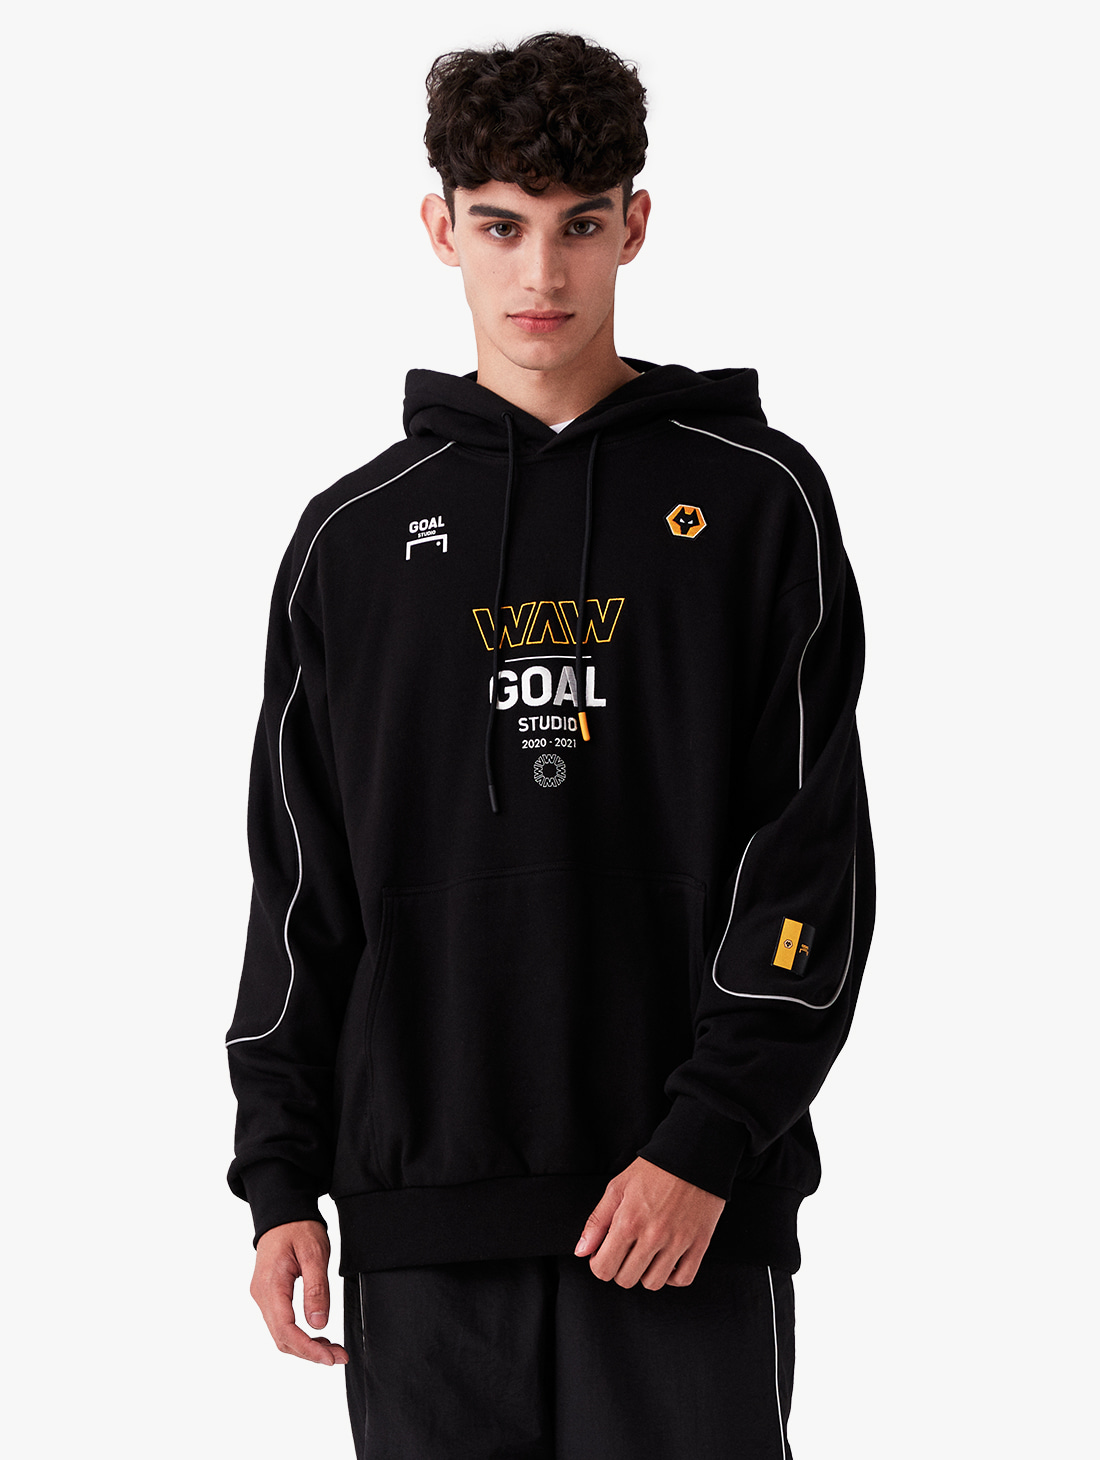 GOALSTUDIO (Sold Out) WWFC GRAPHIC HOODIE